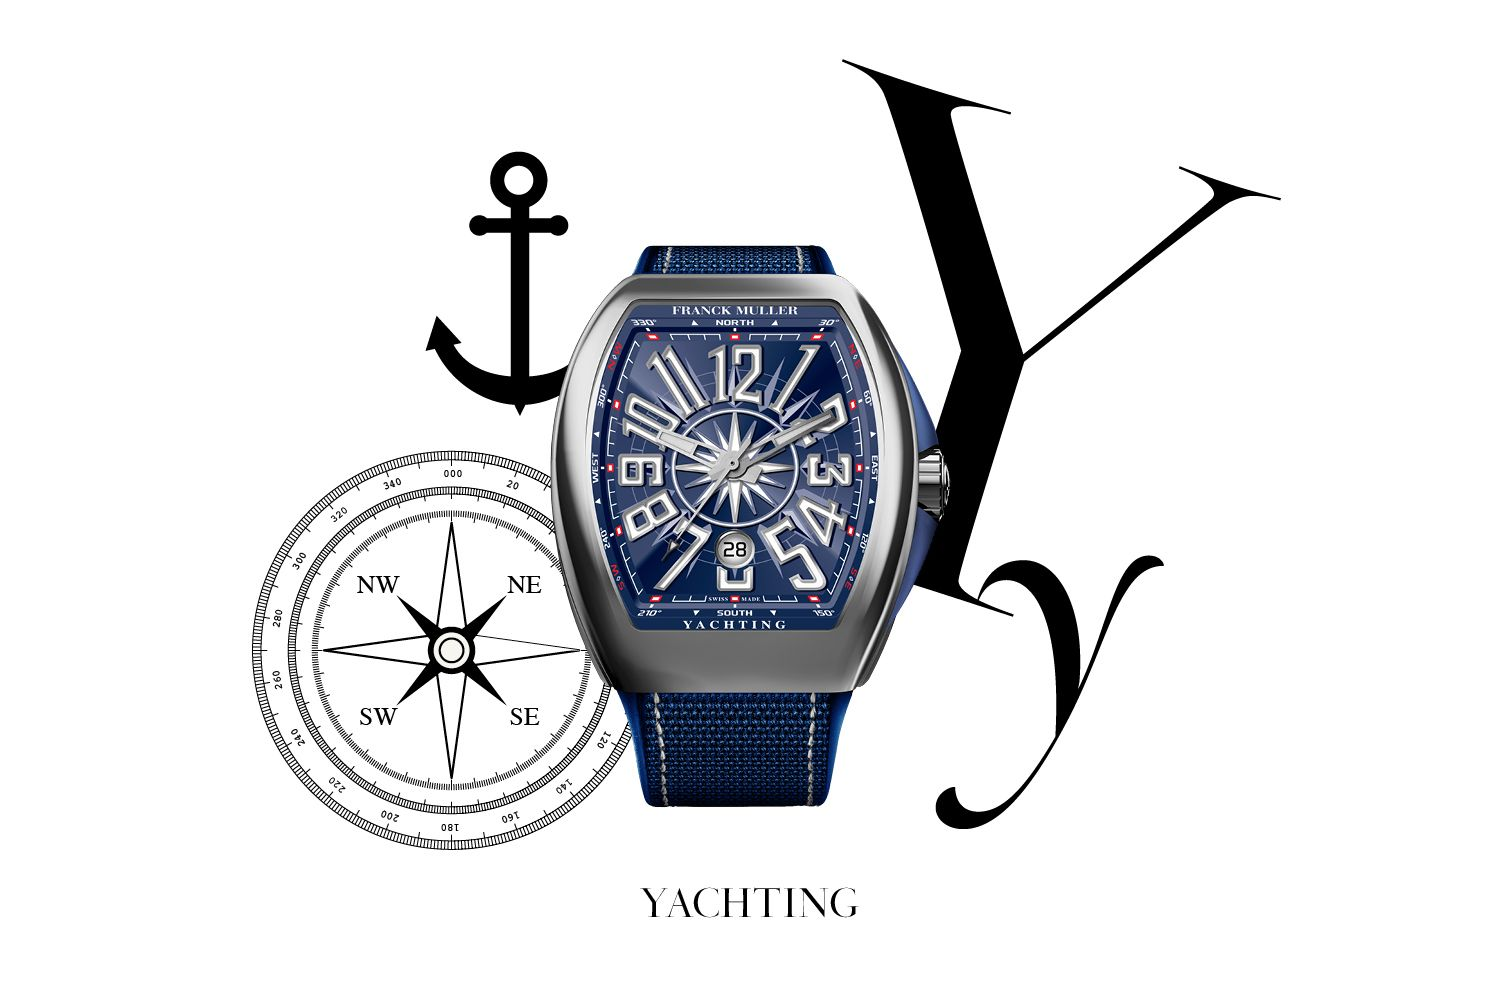 The Watch Expert's Guide: Y For Yachting